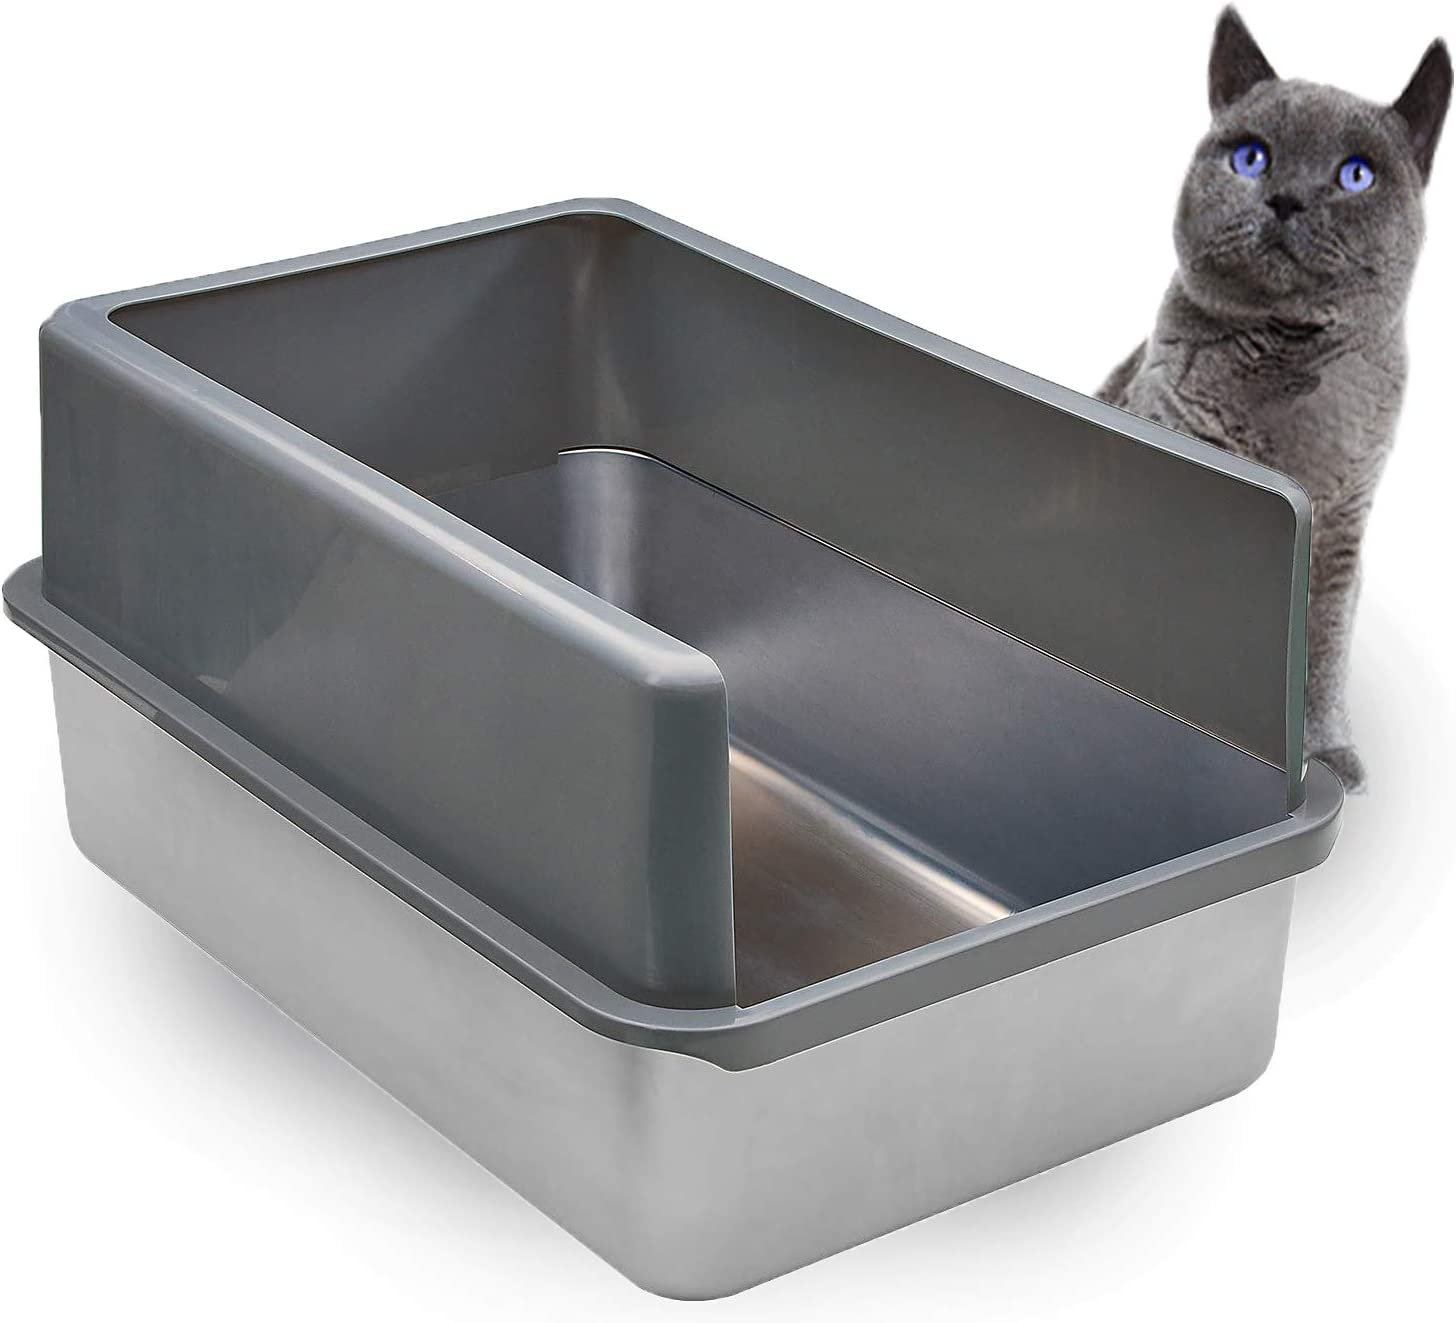 iPrimio Ultimate Stainless Steel Cat XL Never Box Absor Litter - Jacksonville Mall Now free shipping